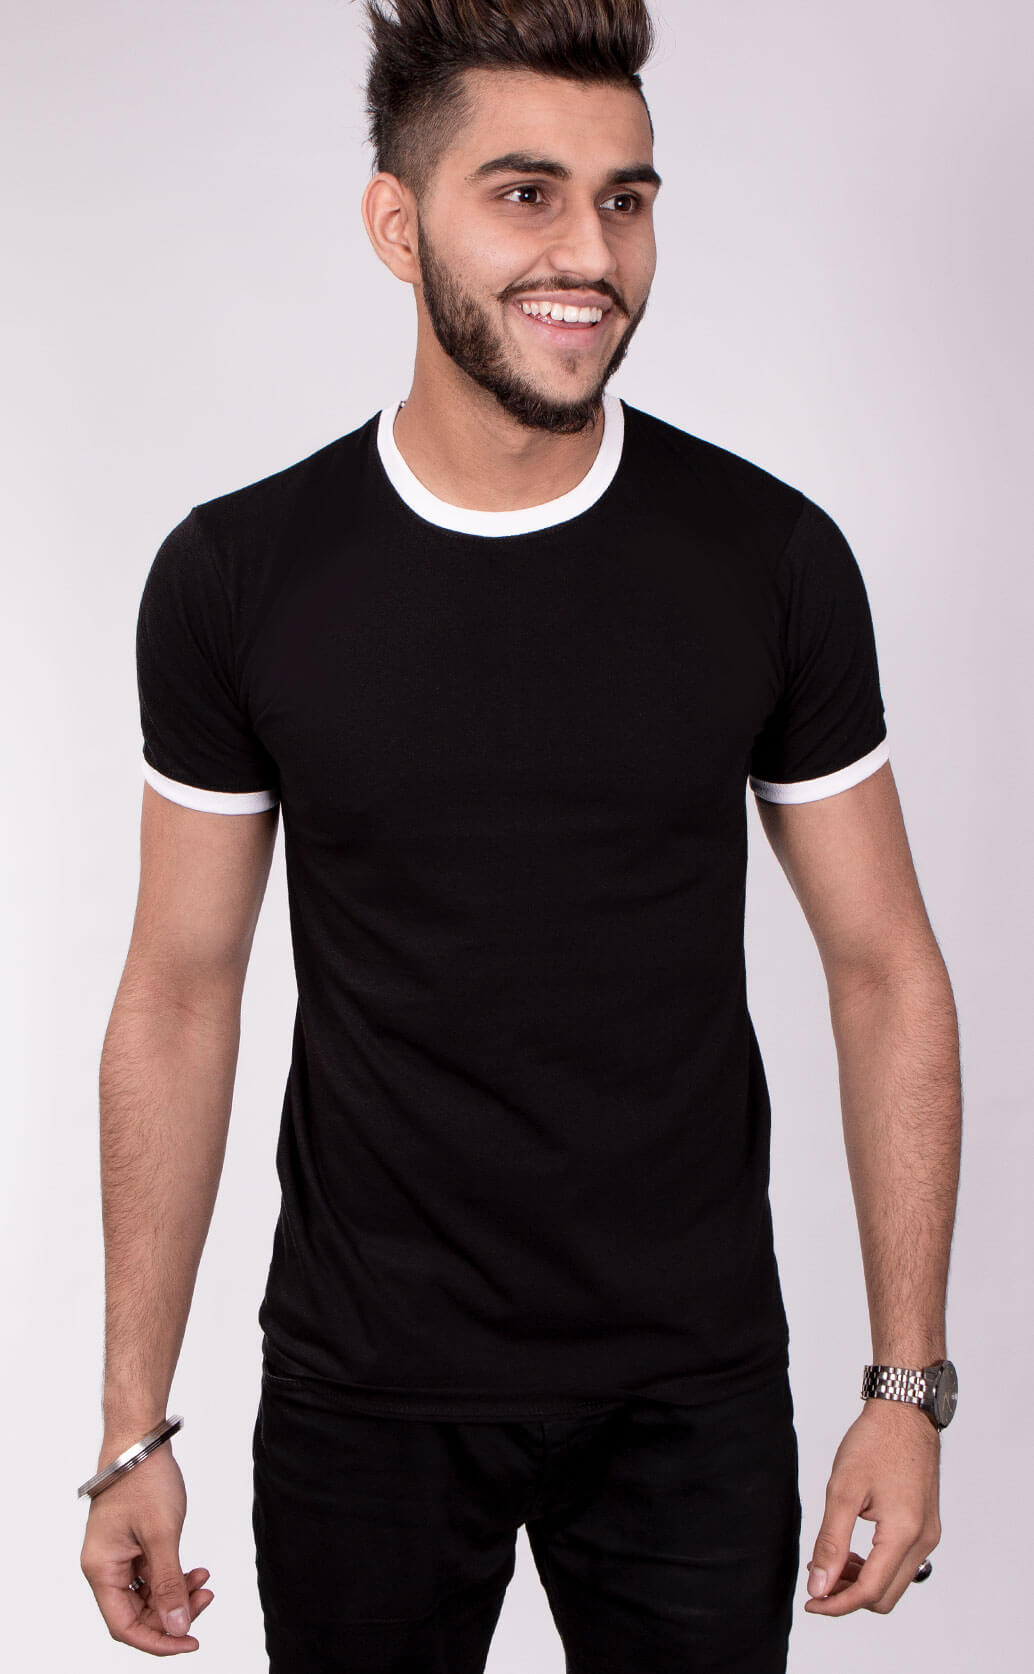 Size guide image for Mens Ringer shirt type. Model is dressed in black